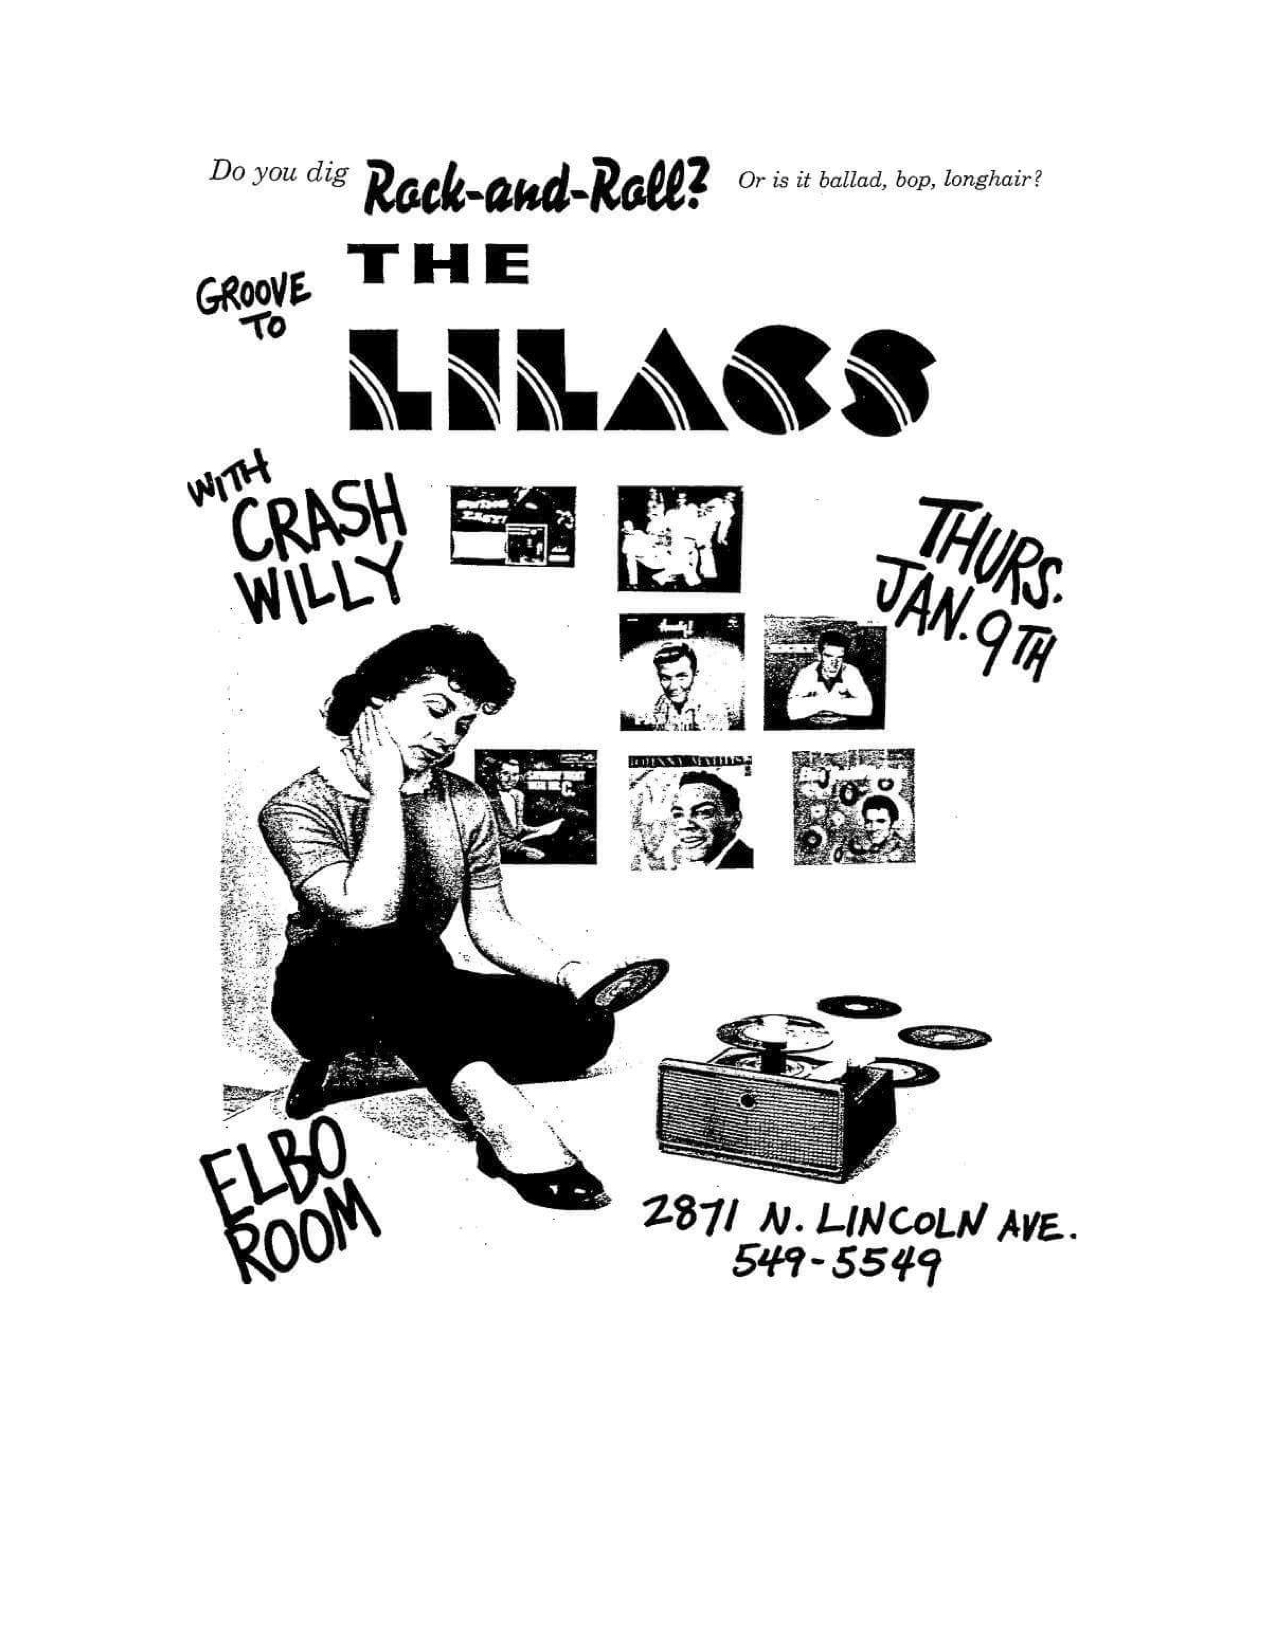 The Lilacs Poster 17 (Crash WIlly).jpg